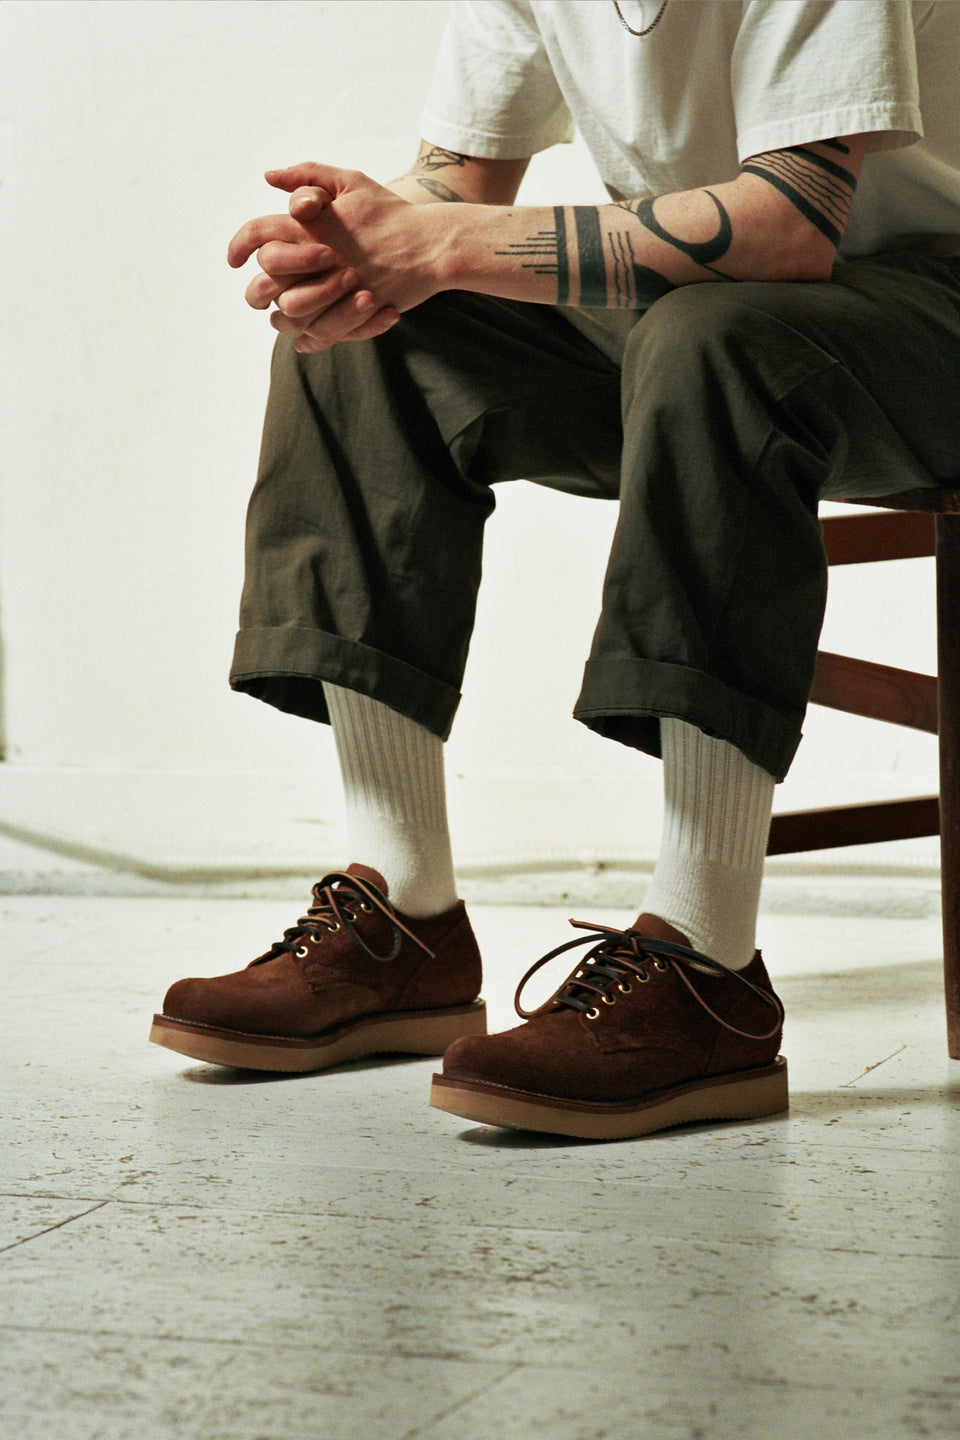 Aged Bark Roughout Brown 145 Oxford Shoe